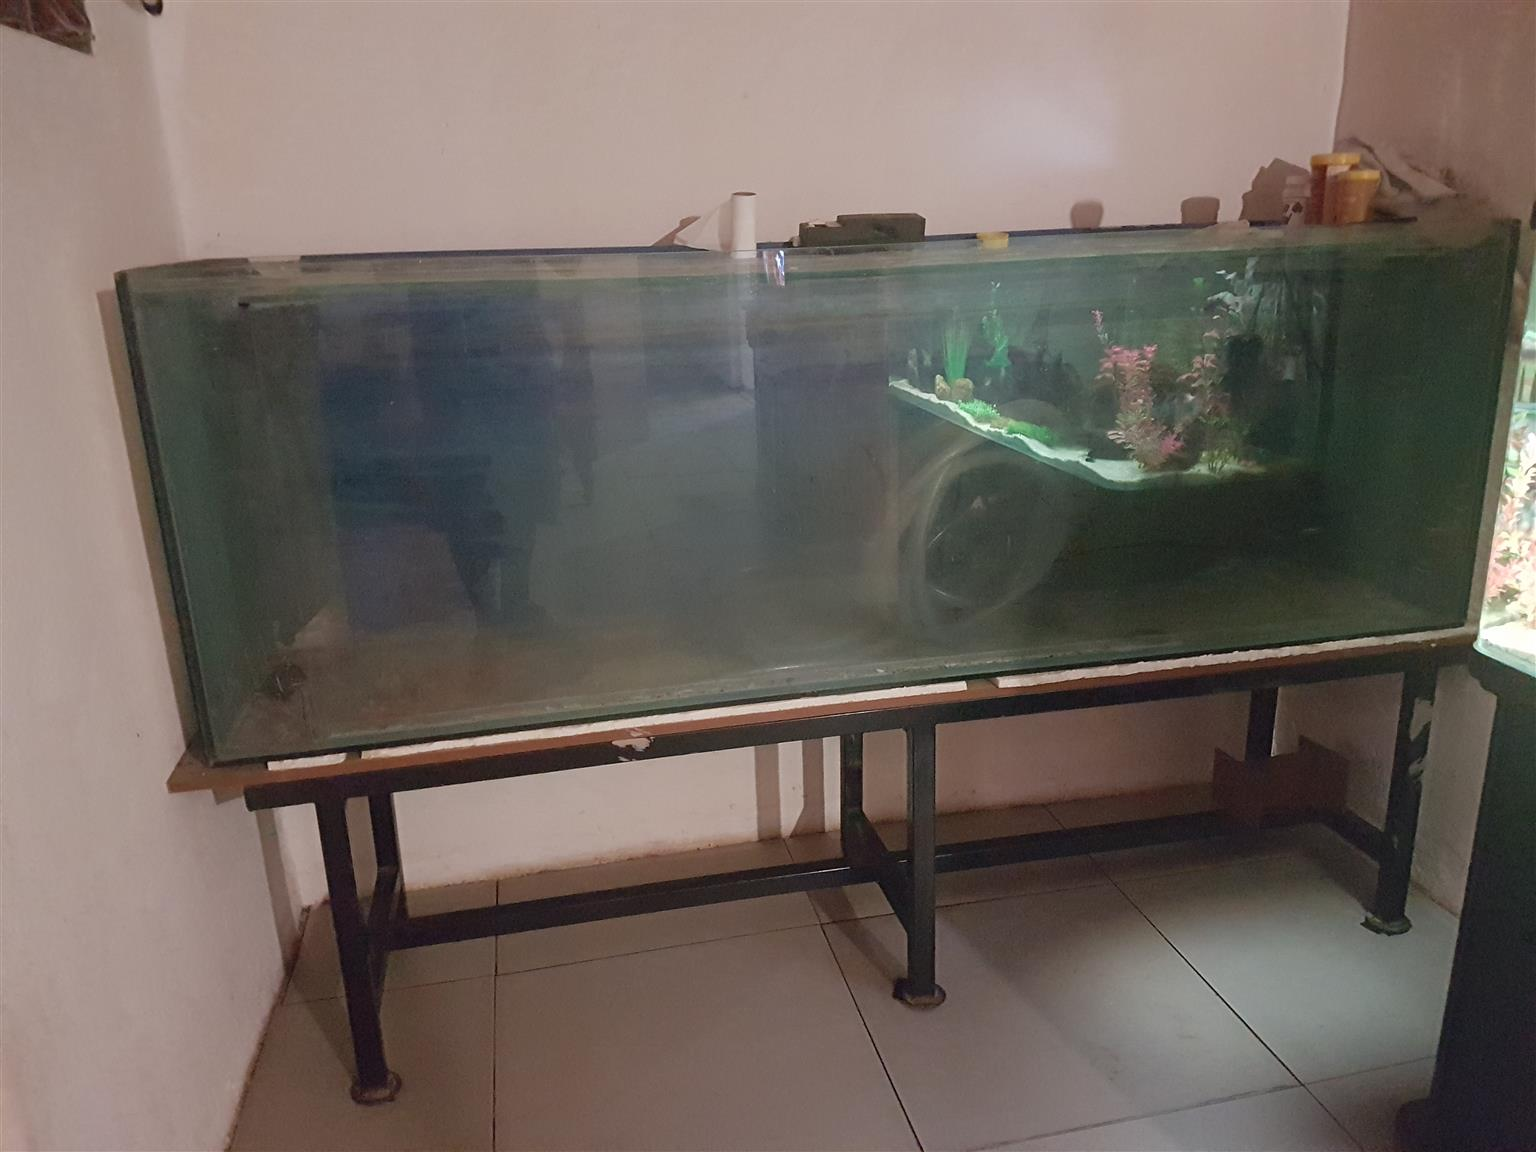 2 meter x 600 mm deep x 450 mm aquarium with metal stand for sale